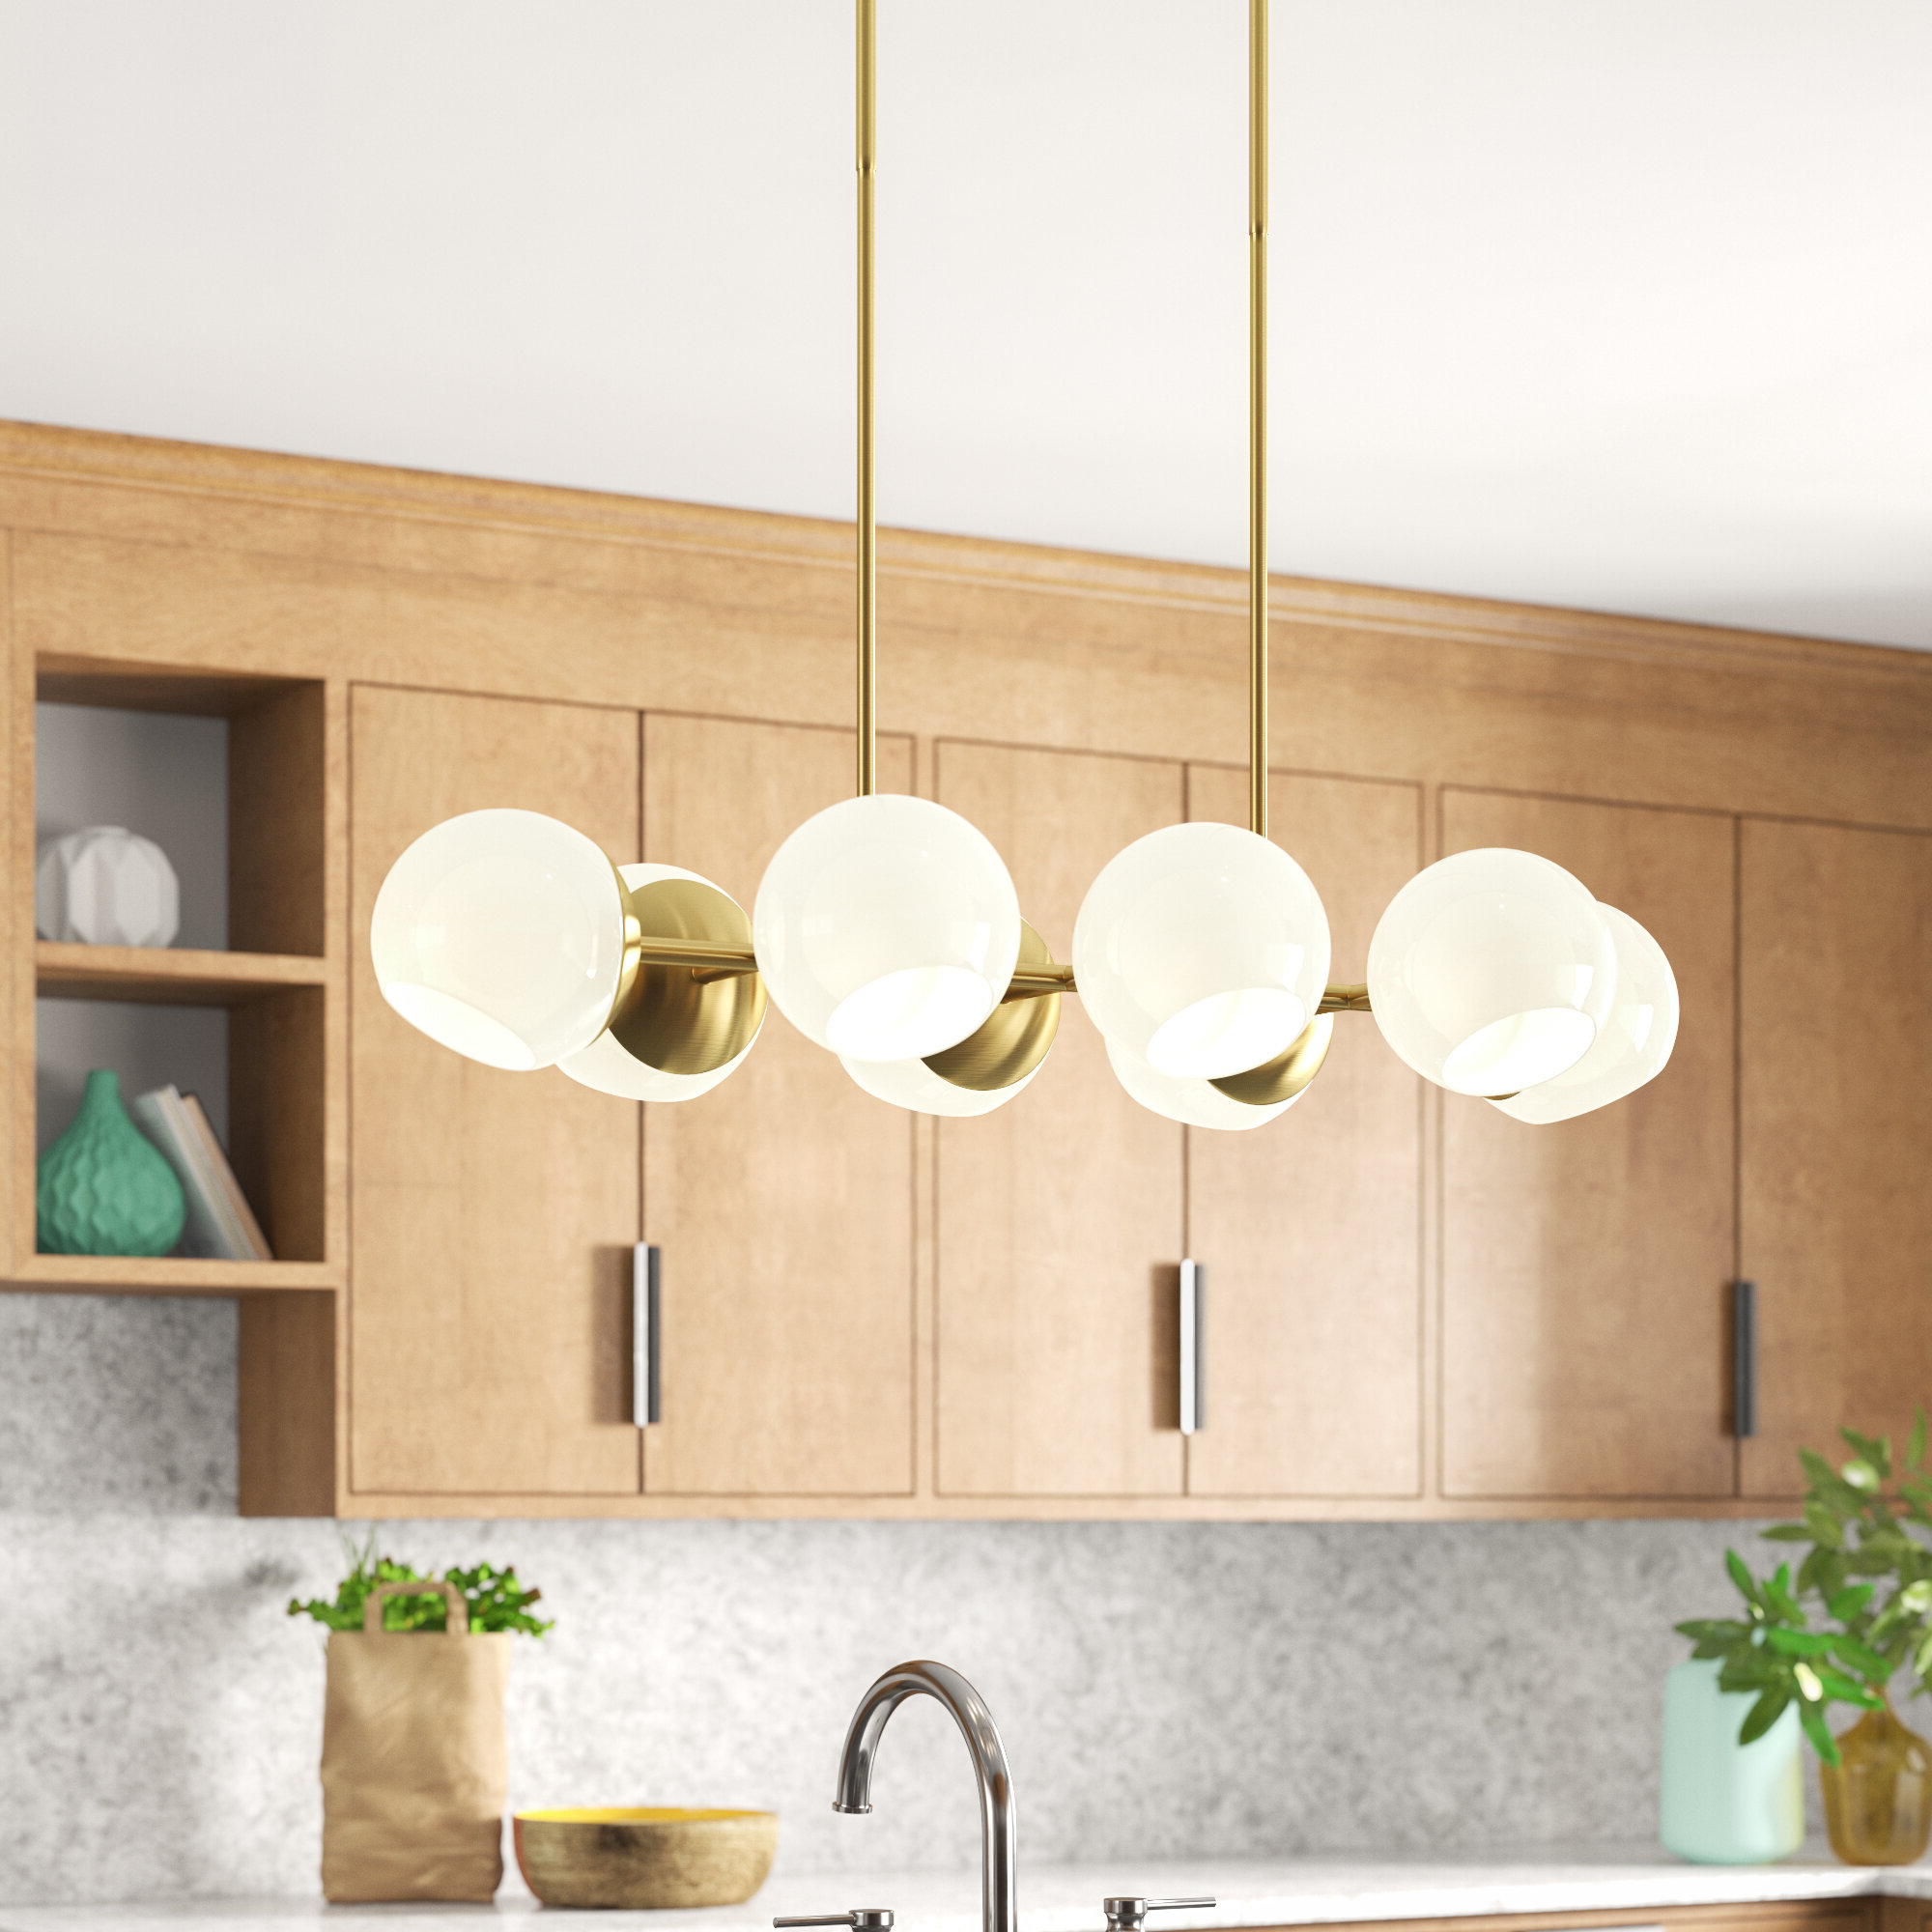 Widely Used Ashley 8 Light Kitchen Island Linear Pendant Intended For Neal 9 Light Kitchen Island Teardrop Pendants (Gallery 19 of 20)